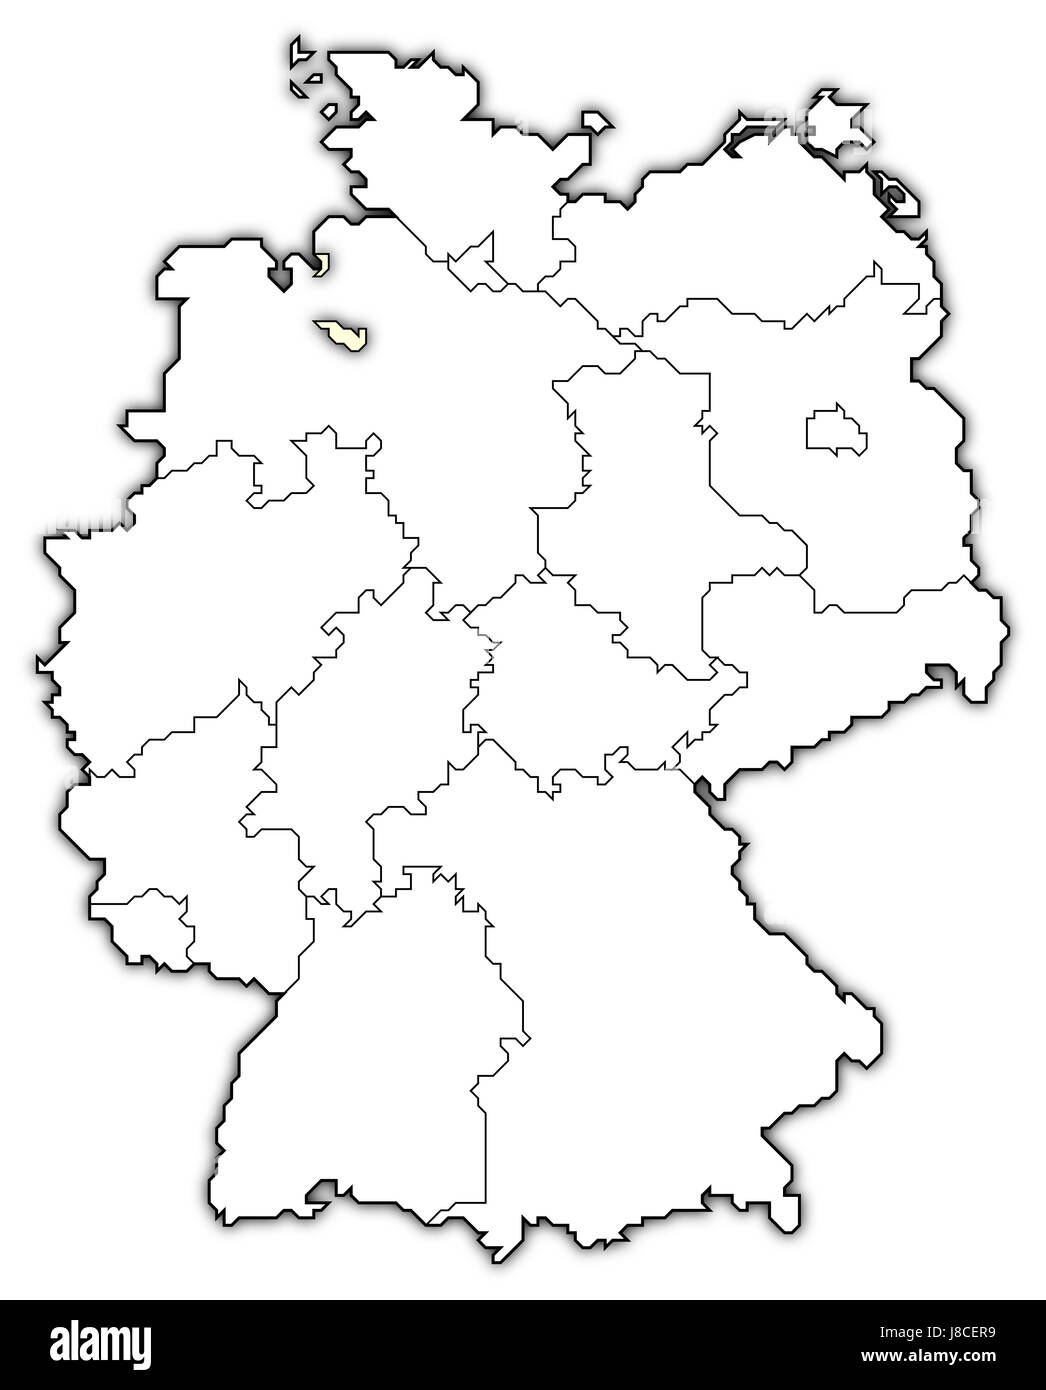 map of germany,bremen highlighted - Stock Image